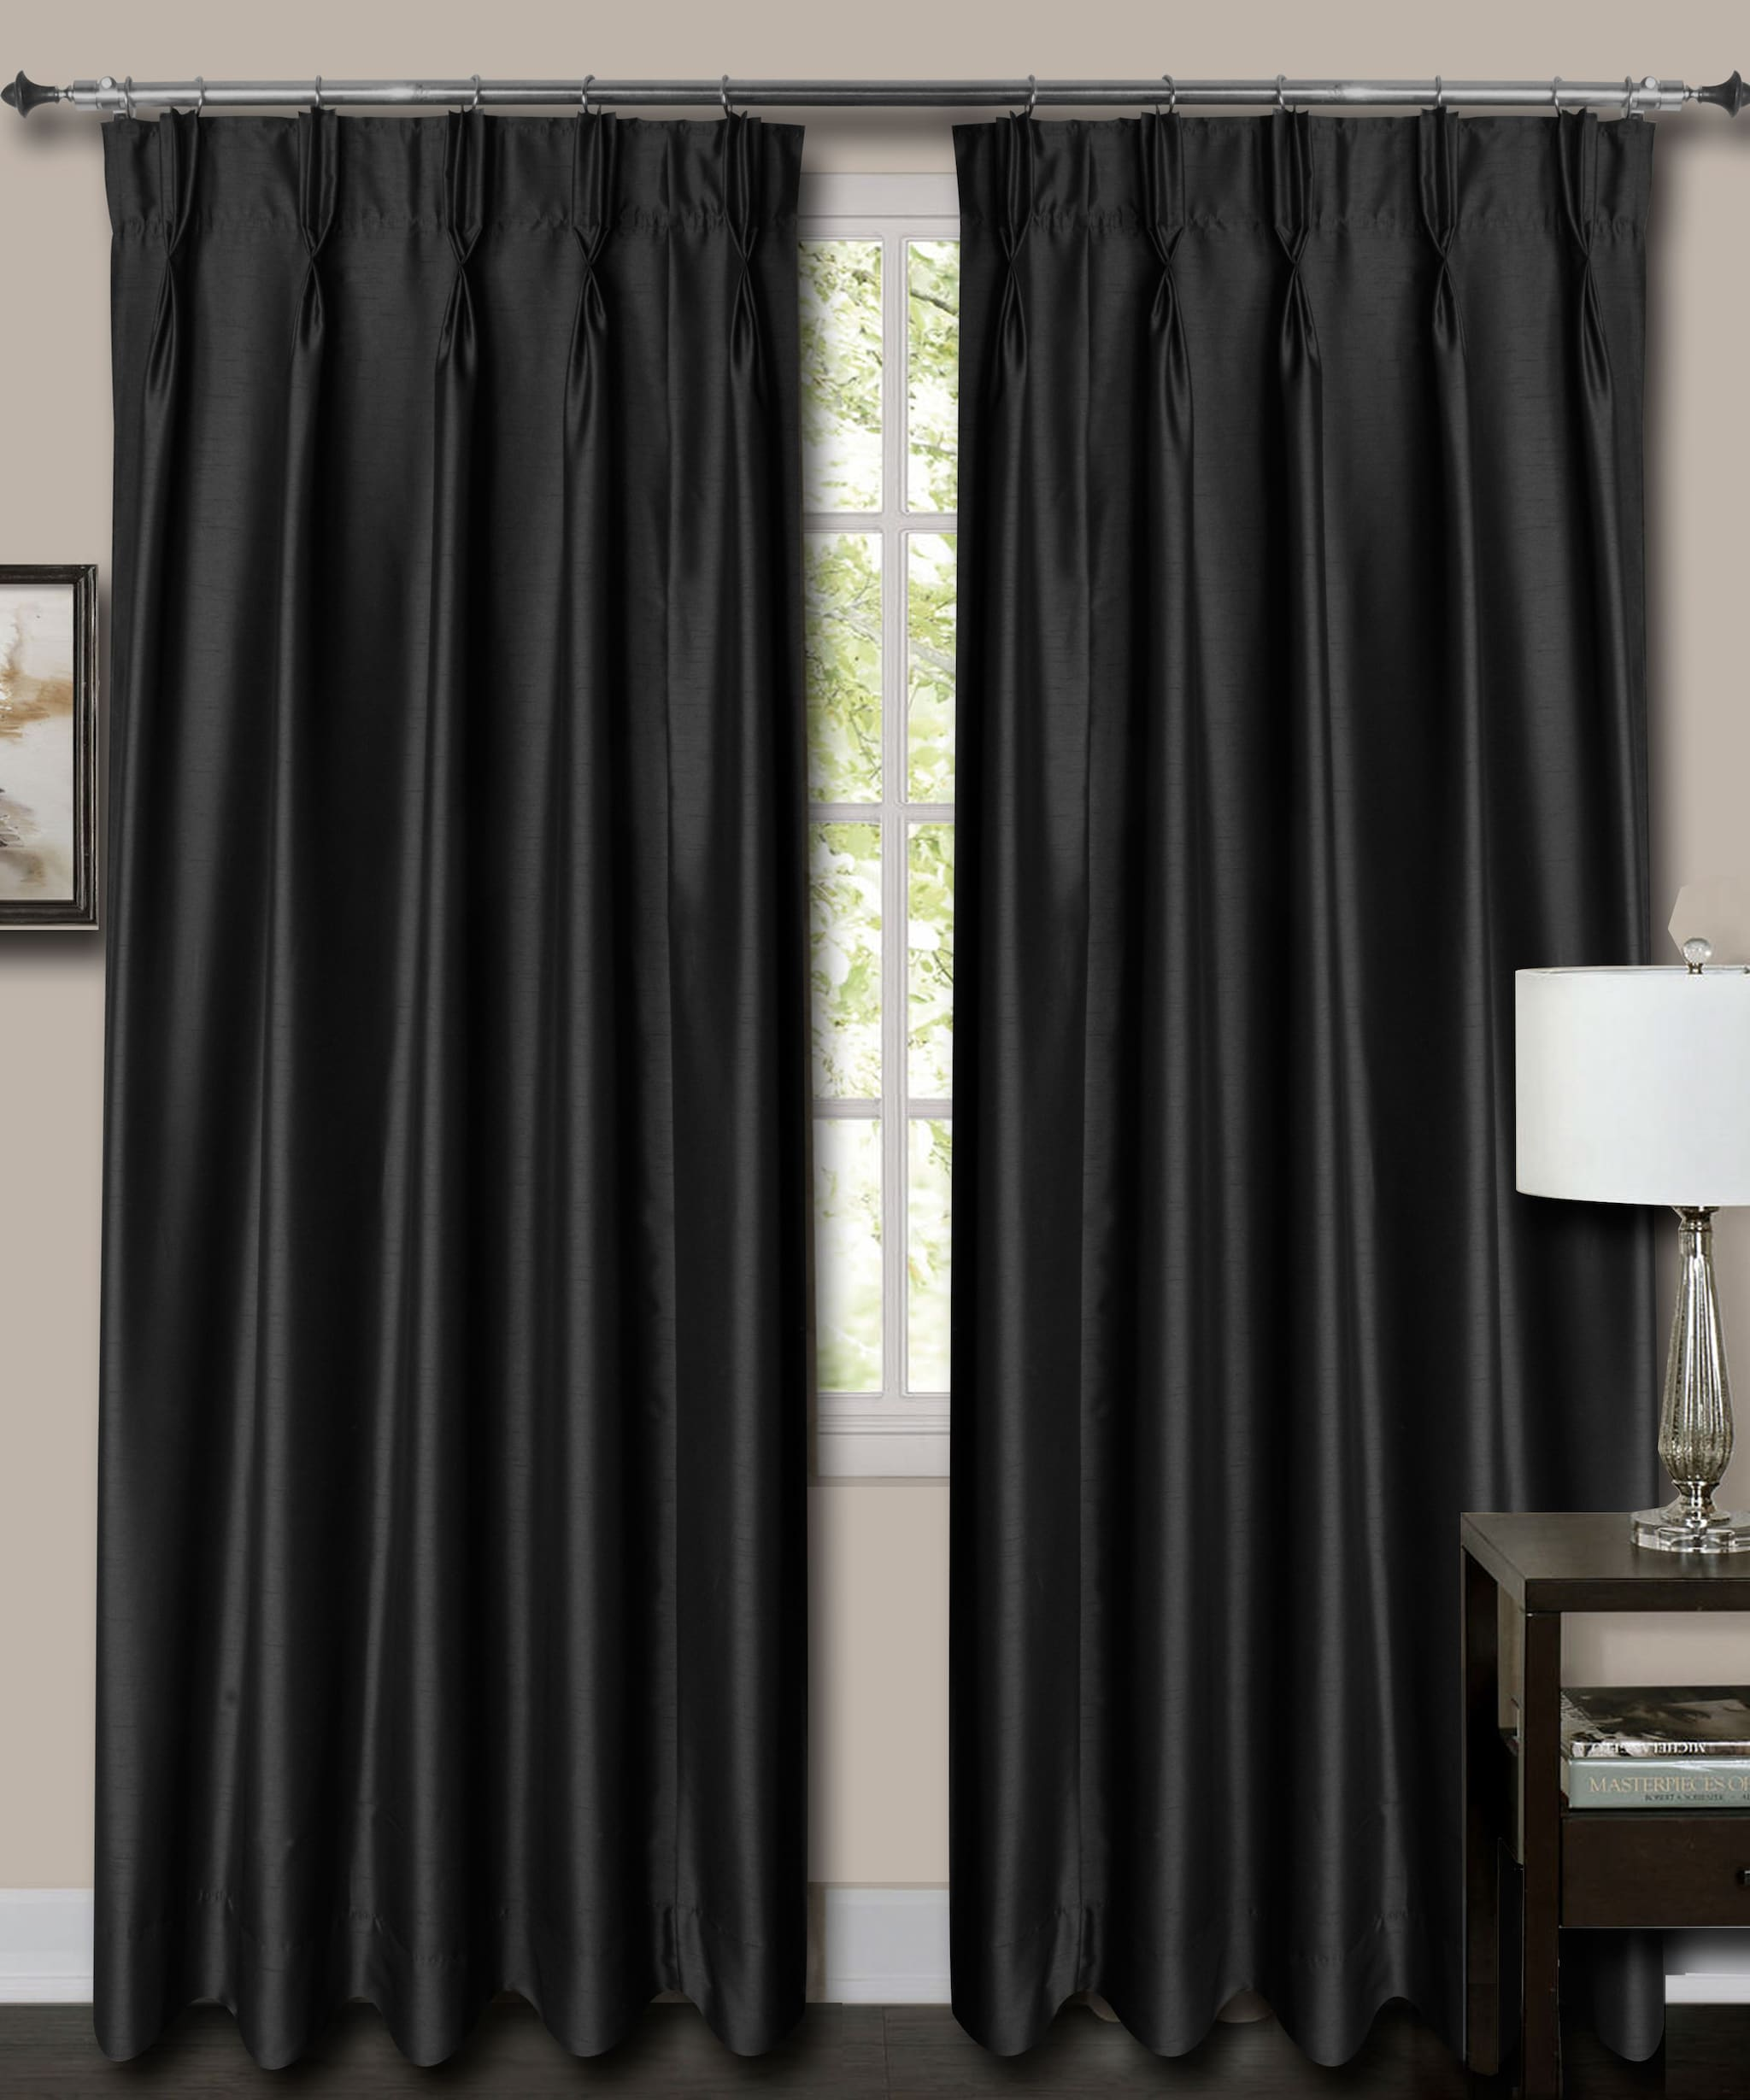 "French Pleat Top Black Faux Silk Dupioni Curtains. (24"" Wide,5 Feet Long,Blackout Lining)"